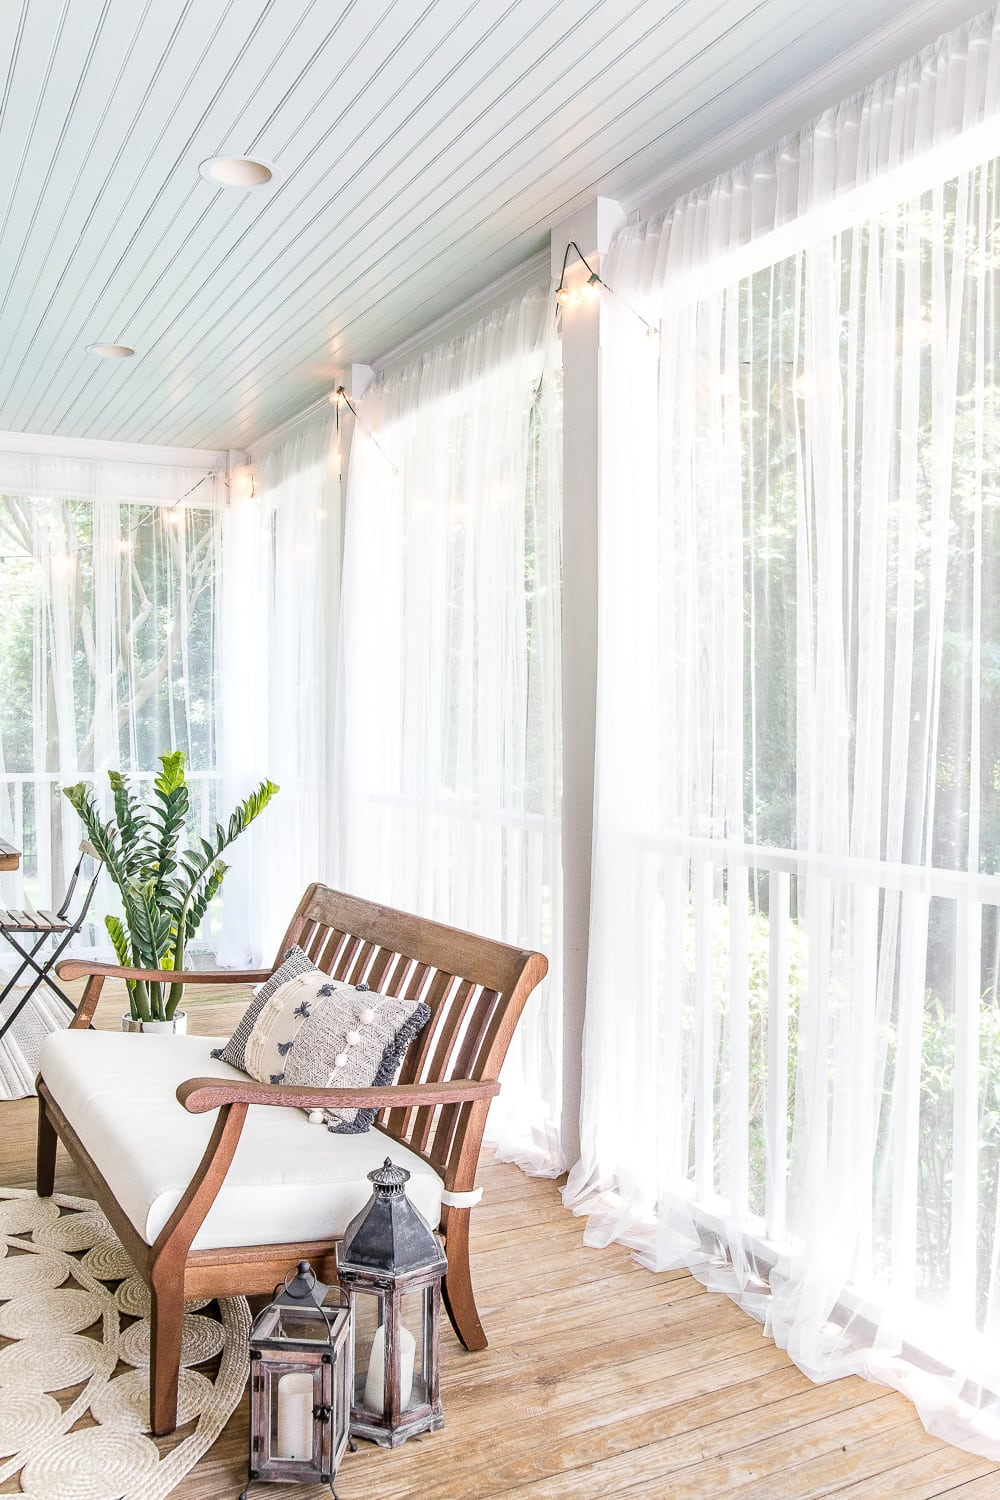 Pleasing Diy Outdoor Curtains And Screened Porch For Under 100 Home Interior And Landscaping Oversignezvosmurscom